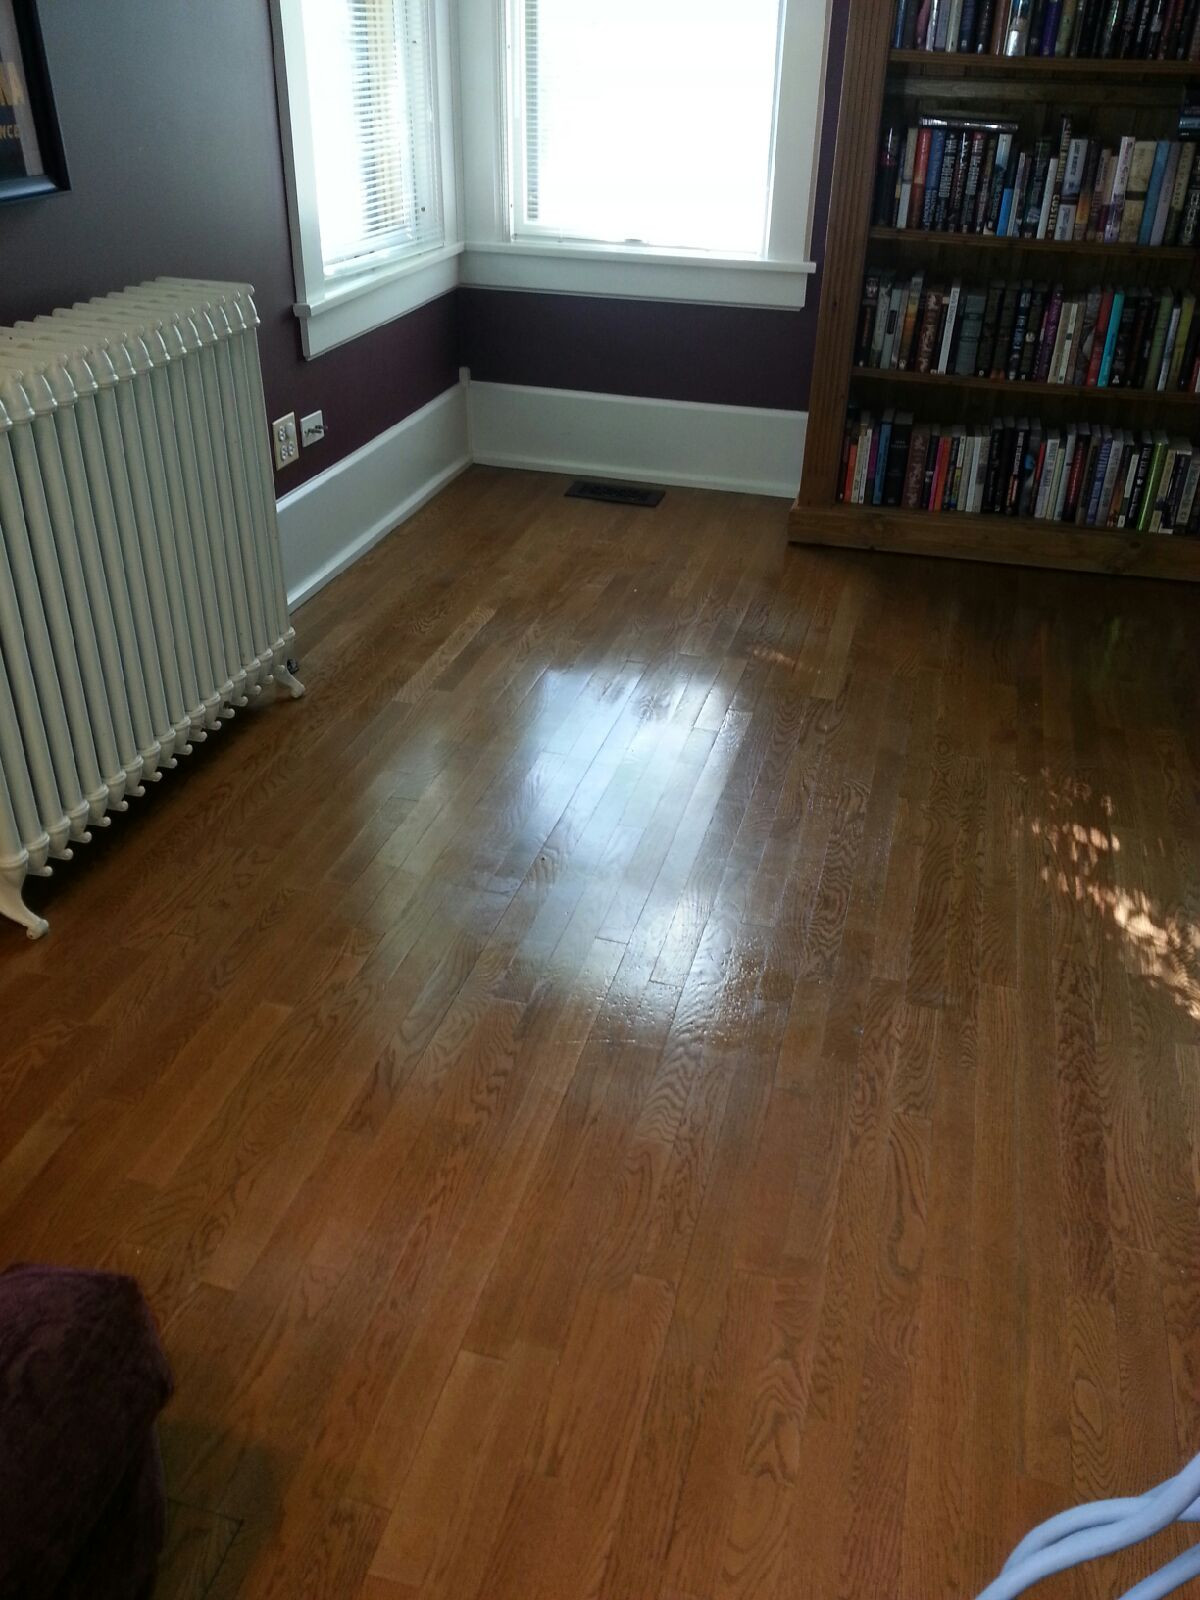 hardwood floor store bolingbrook il of hardwood floor cleaning rug cleaning hinsdale il koshgarian rug in our cleaning technicians will analyze your floors answer your questions and provide you with all the information you need koshgarian rug cleaners inc